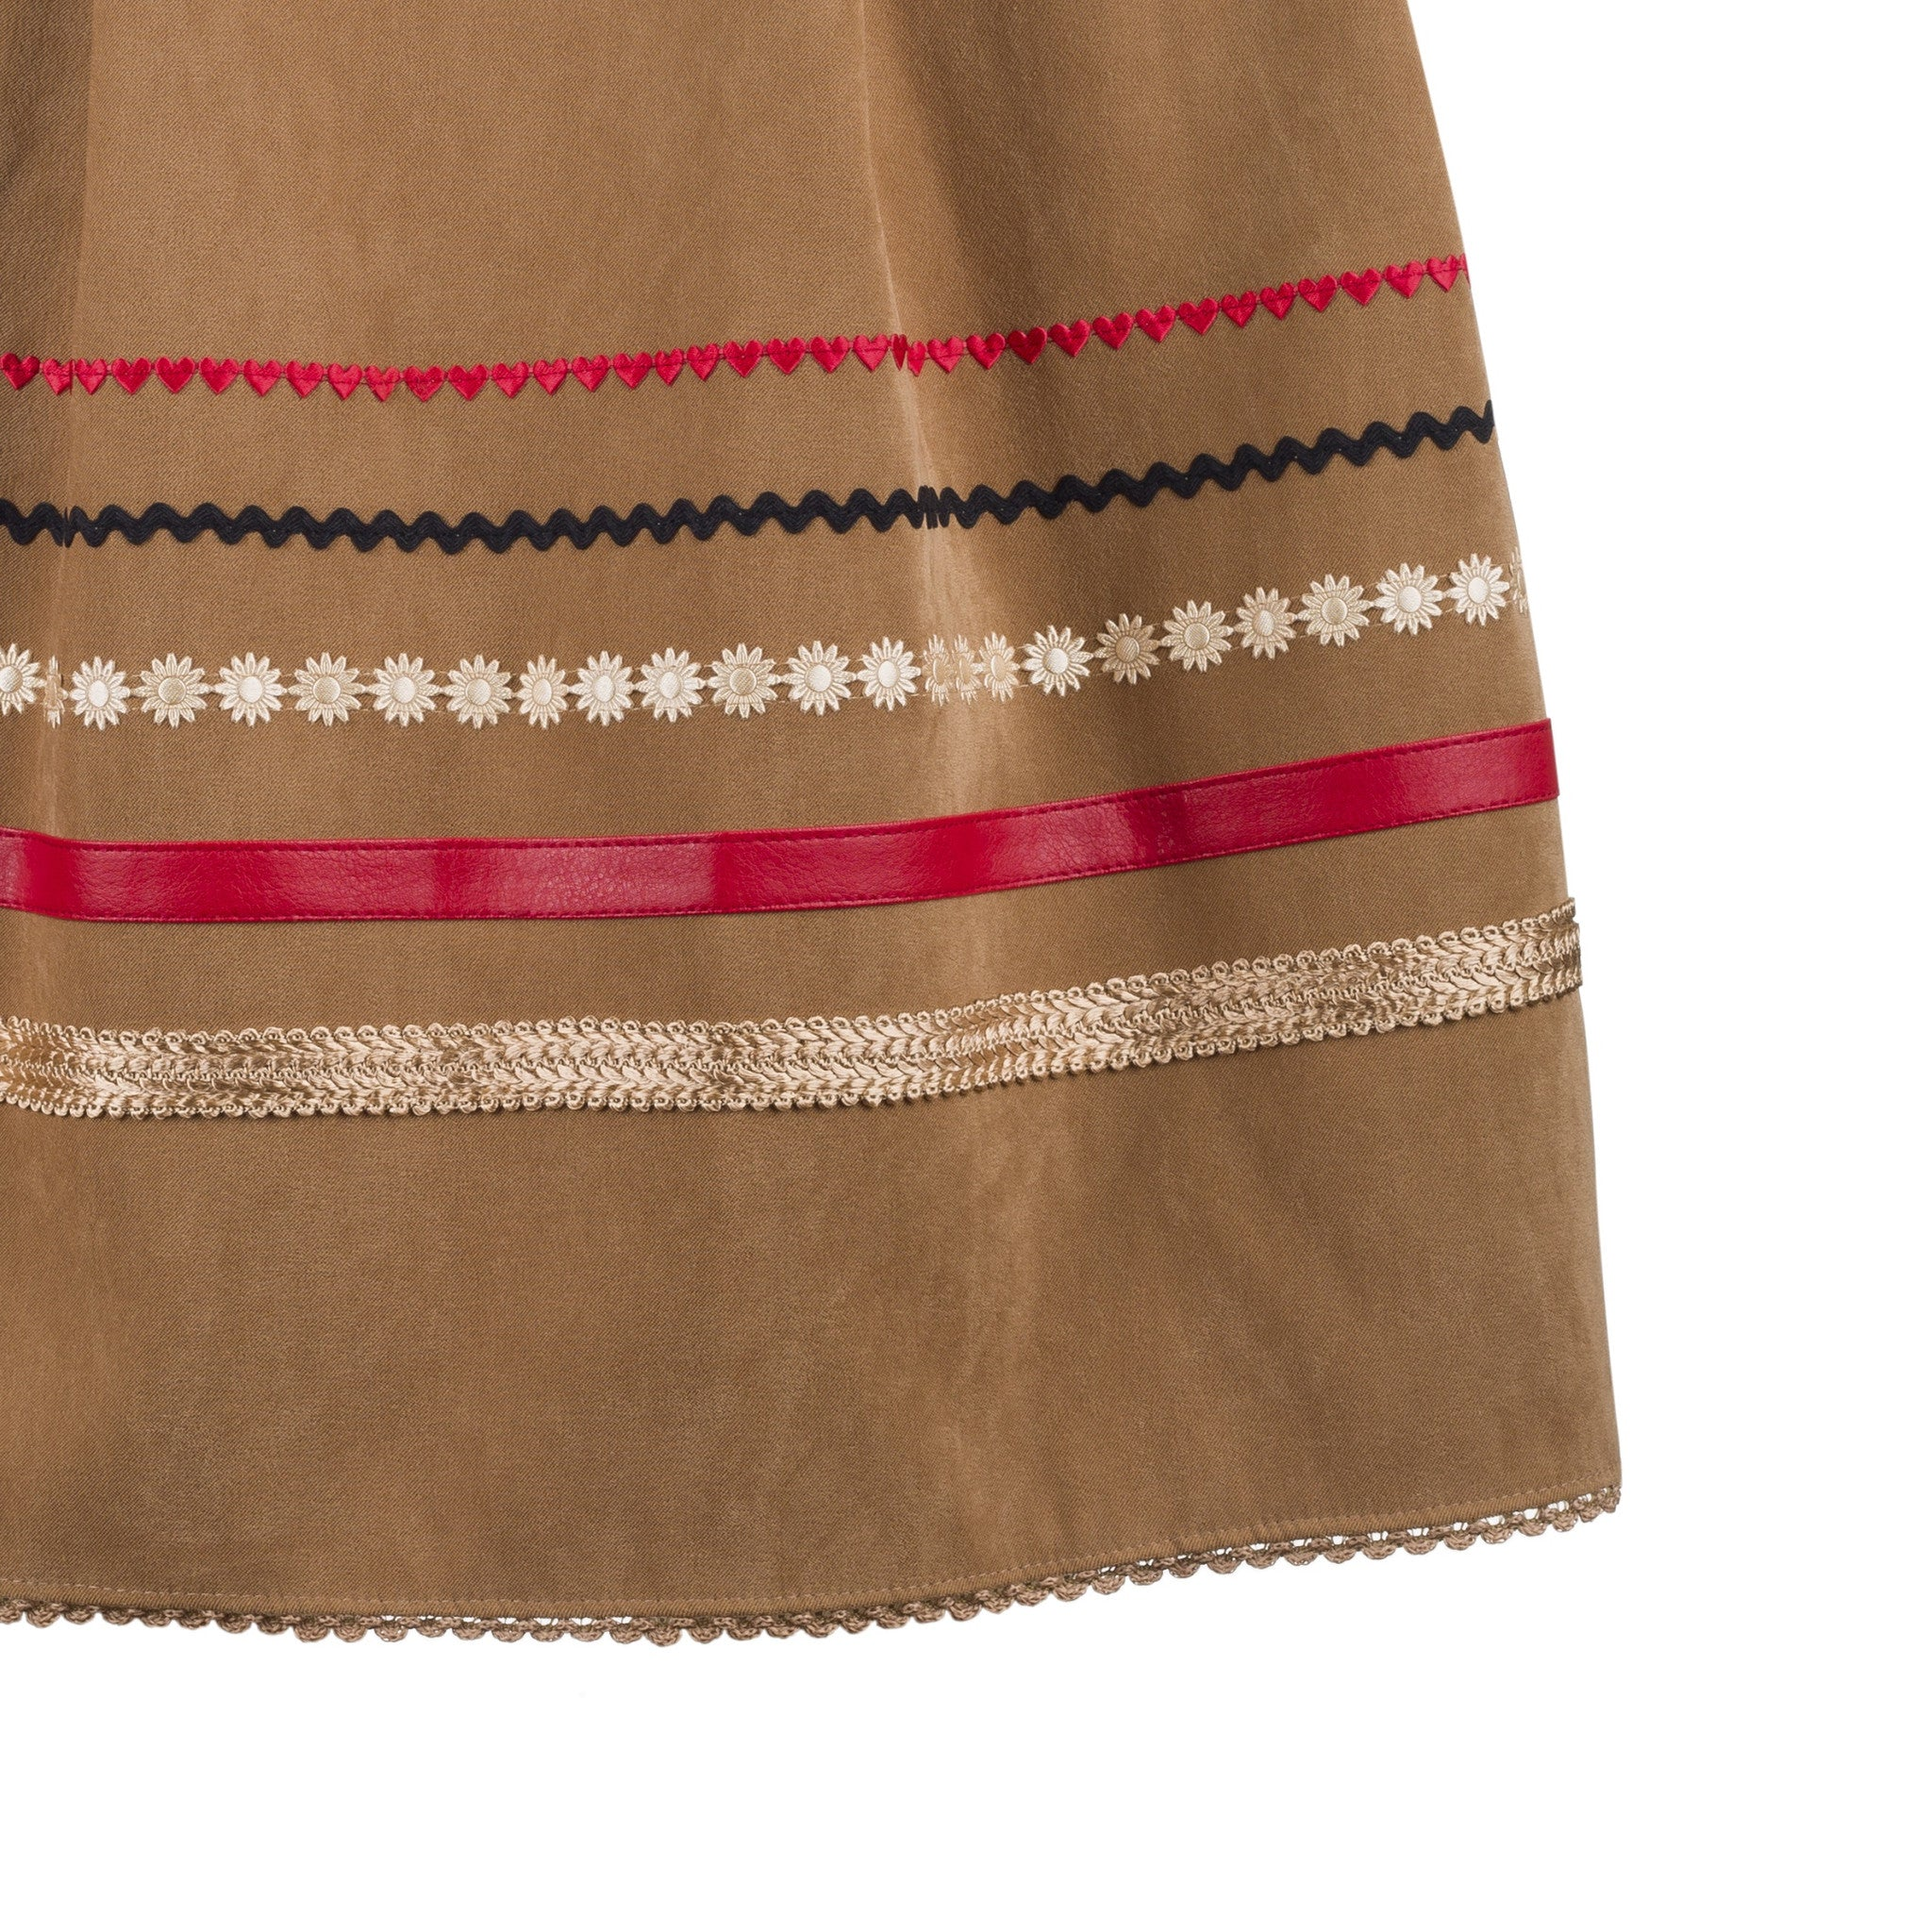 Skirt/apron - brown with ribbons (one size)